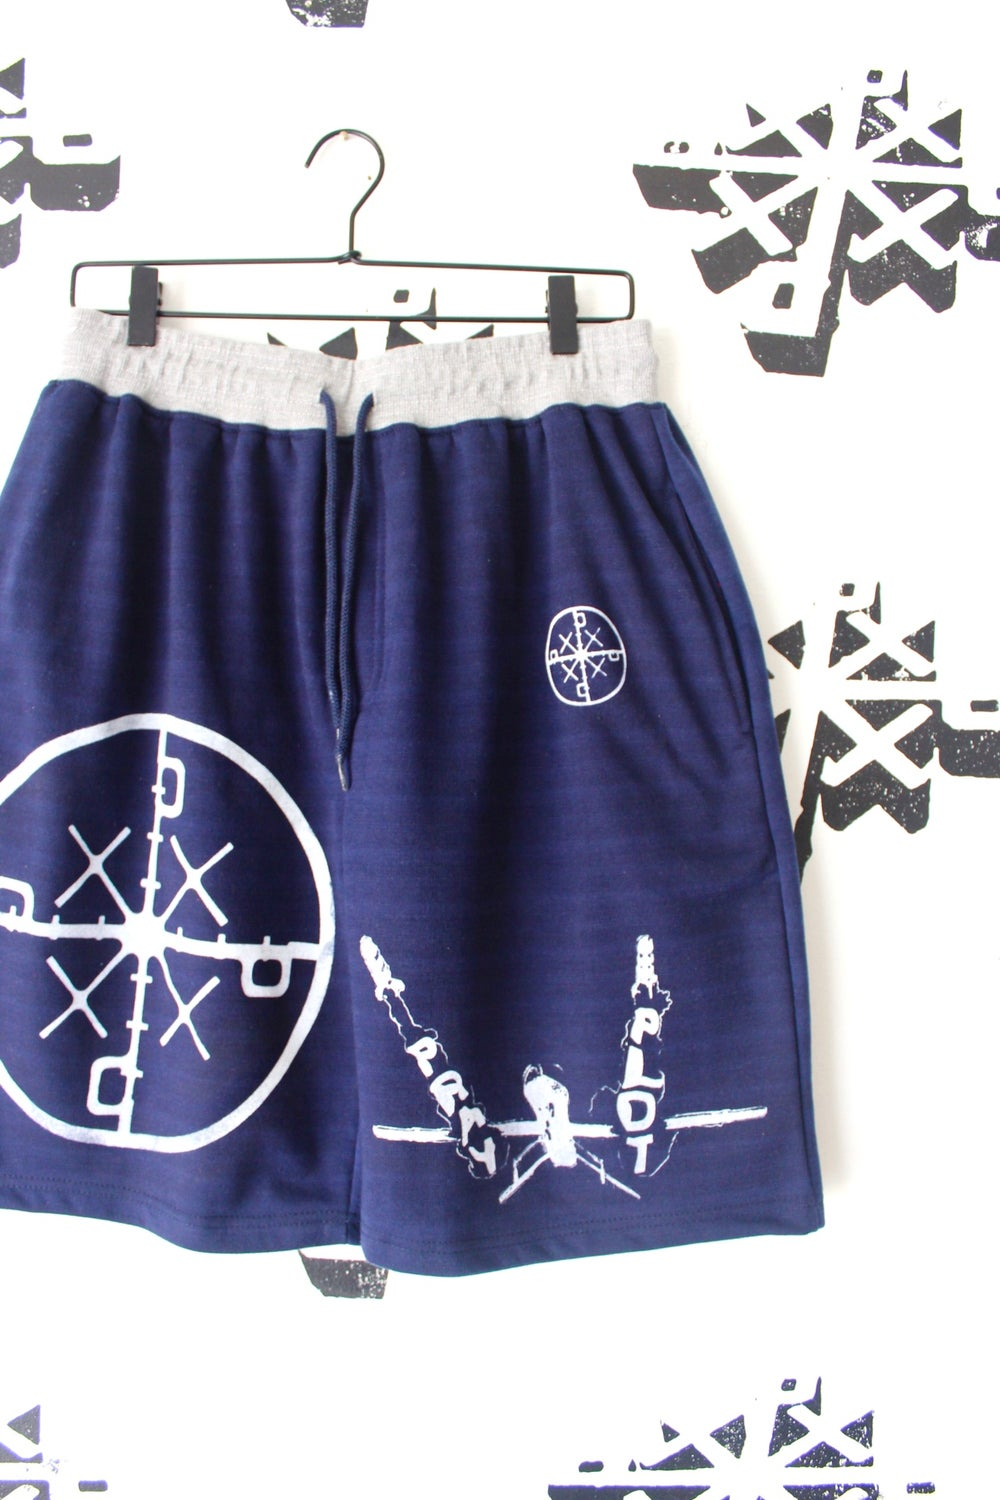 we got these too sweat shorts in navy